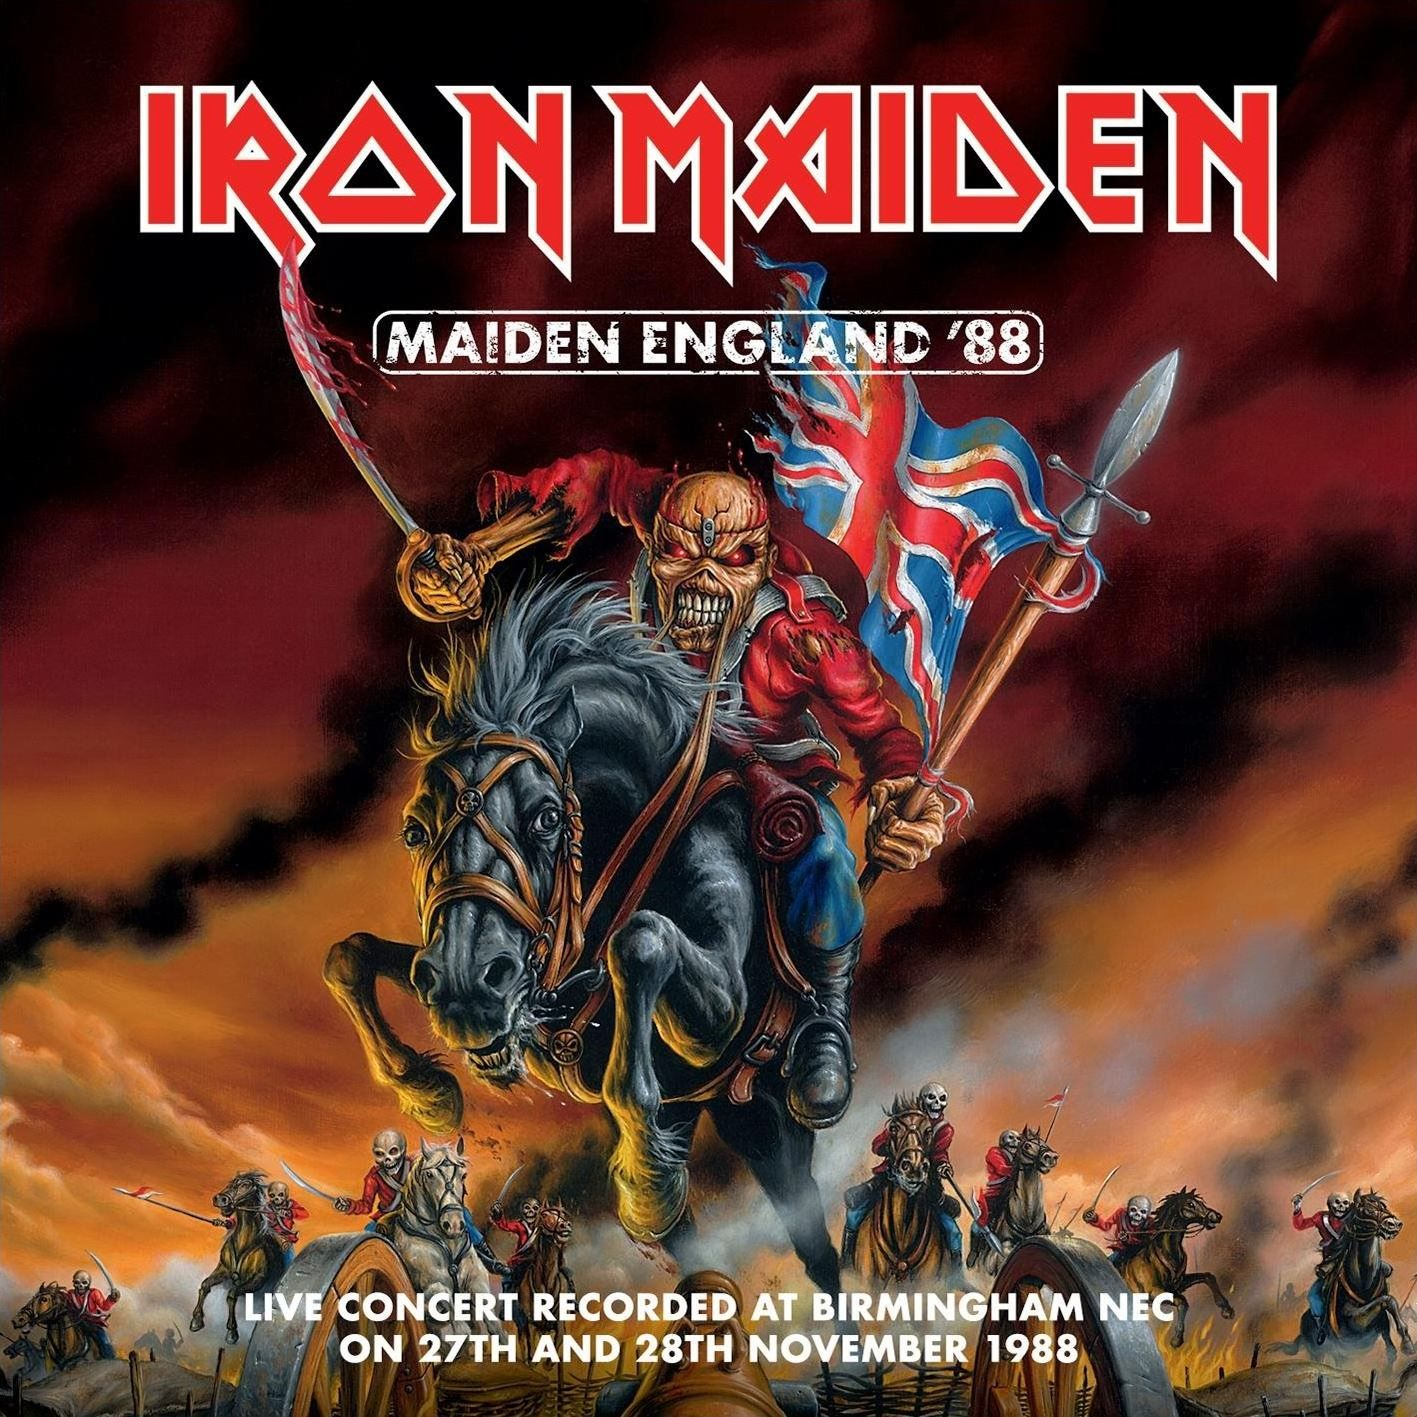 Iron Maiden - Maiden England '88 album cover